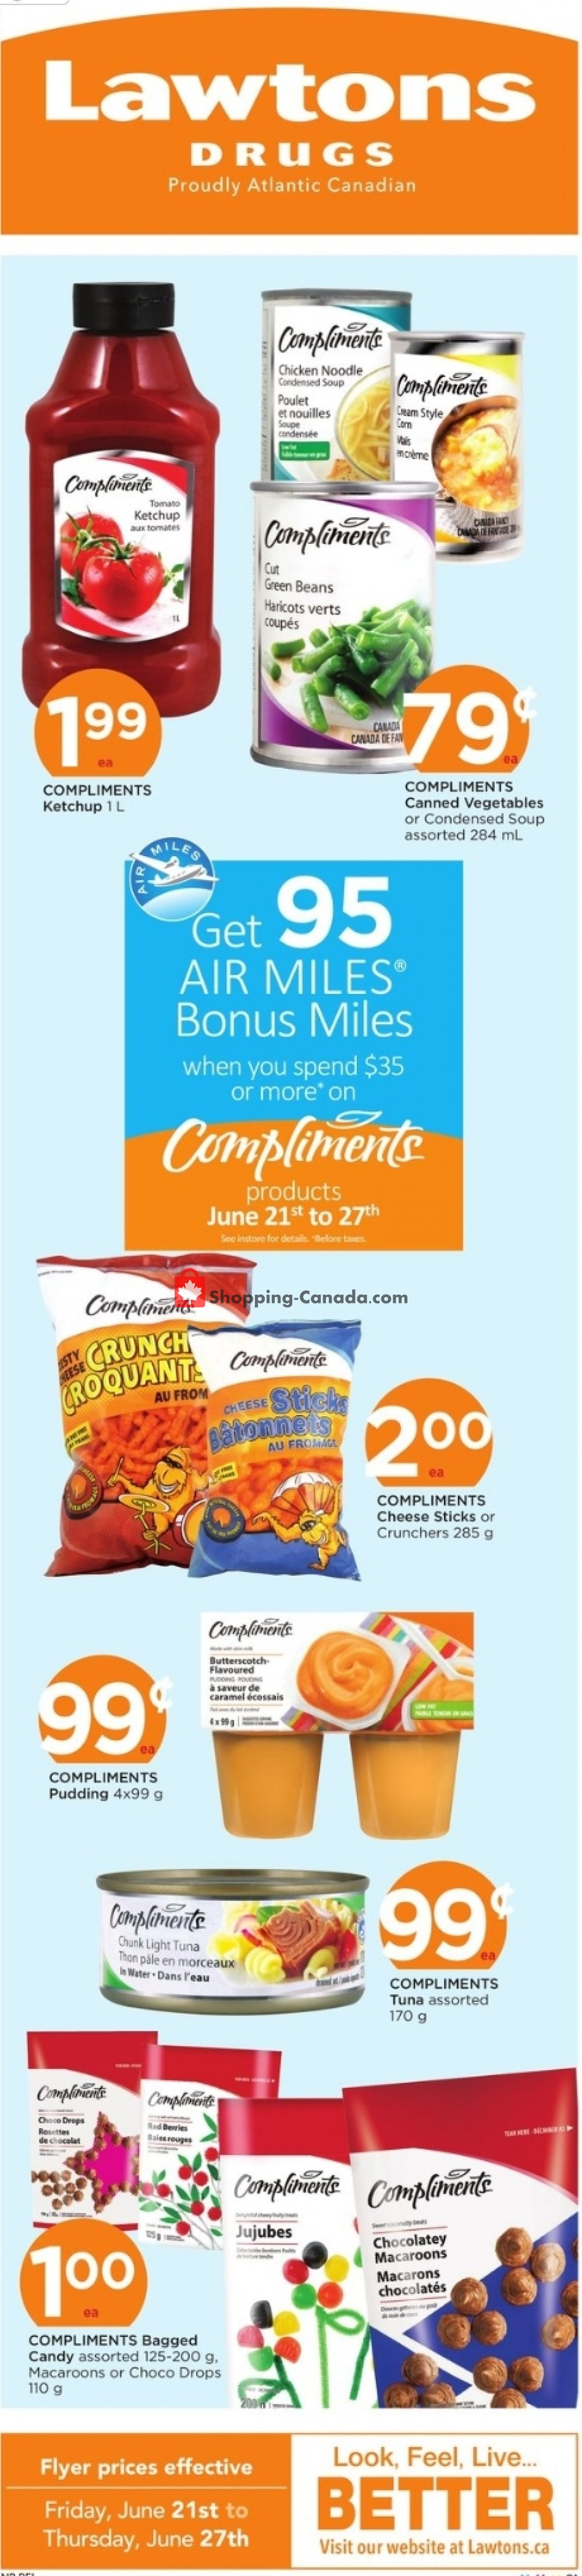 Flyer Lawtons Drugs Canada - from Friday June 21, 2019 to Thursday June 27, 2019